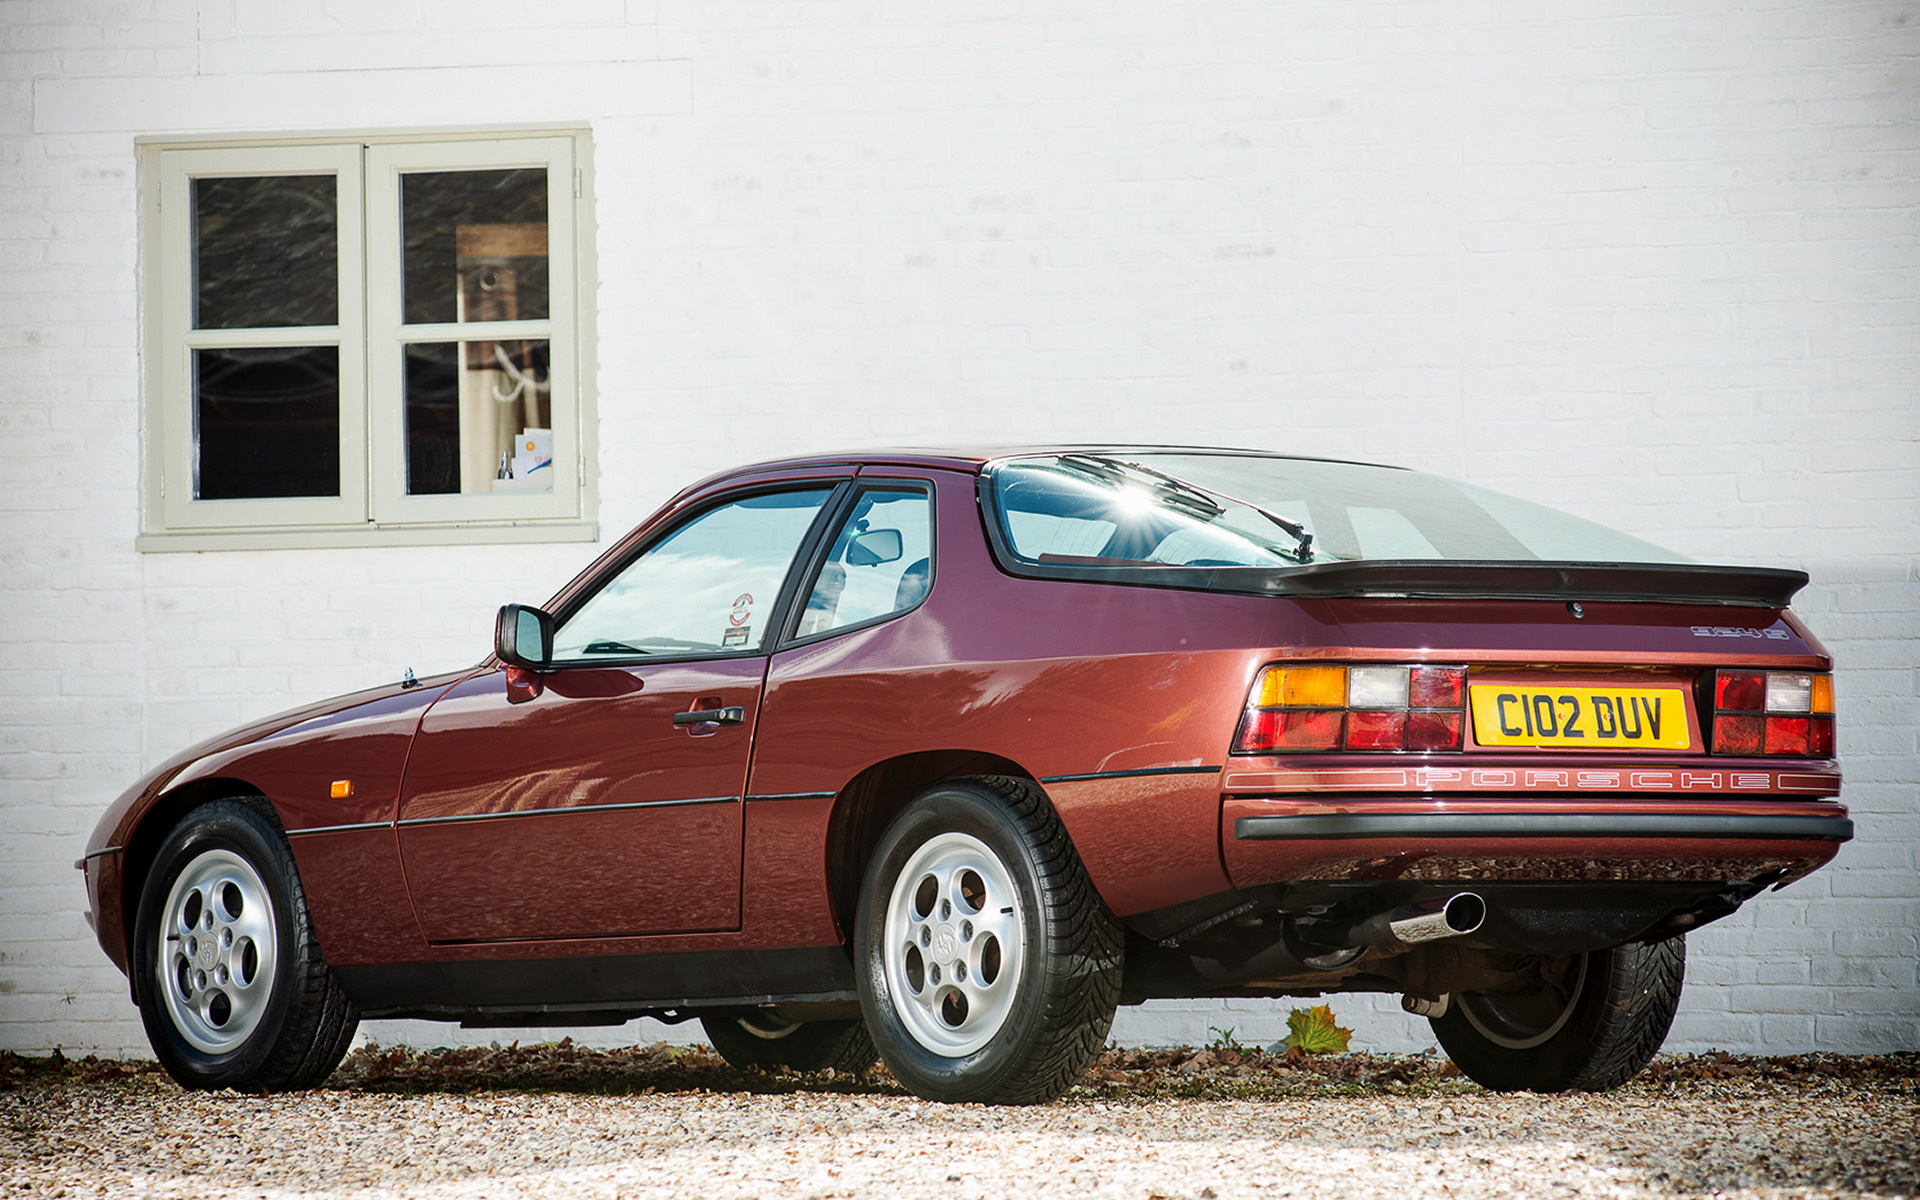 Porsche 924 S (1986) UK Wallpapers and HD Images - Car Pixel on porsche 964 carrera, porsche 993 carrera, porsche 356 carrera, 2007 porsche carrera, porsche carrera 2000 engines, porsche 906 carrera, porsche 959 carrera, 1980 porsche carrera, porsche boxster carrera, porsche 991 carrera, porsche 996 carrera,